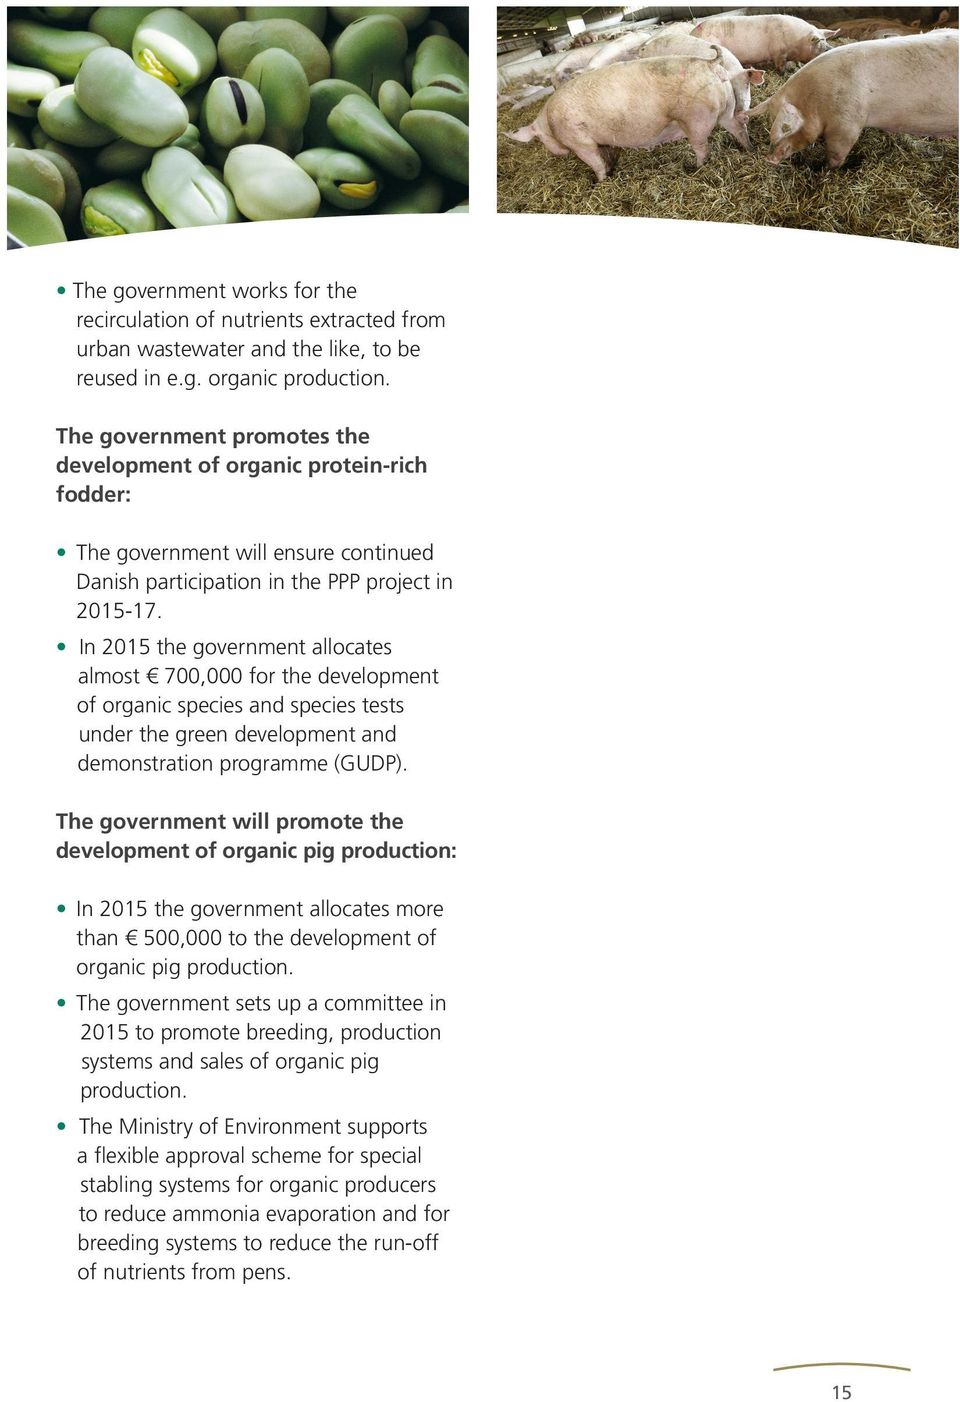 In 2015 the government allocates almost 700,000 for the development of organic species and species tests under the green development and demonstration programme (GUDP).